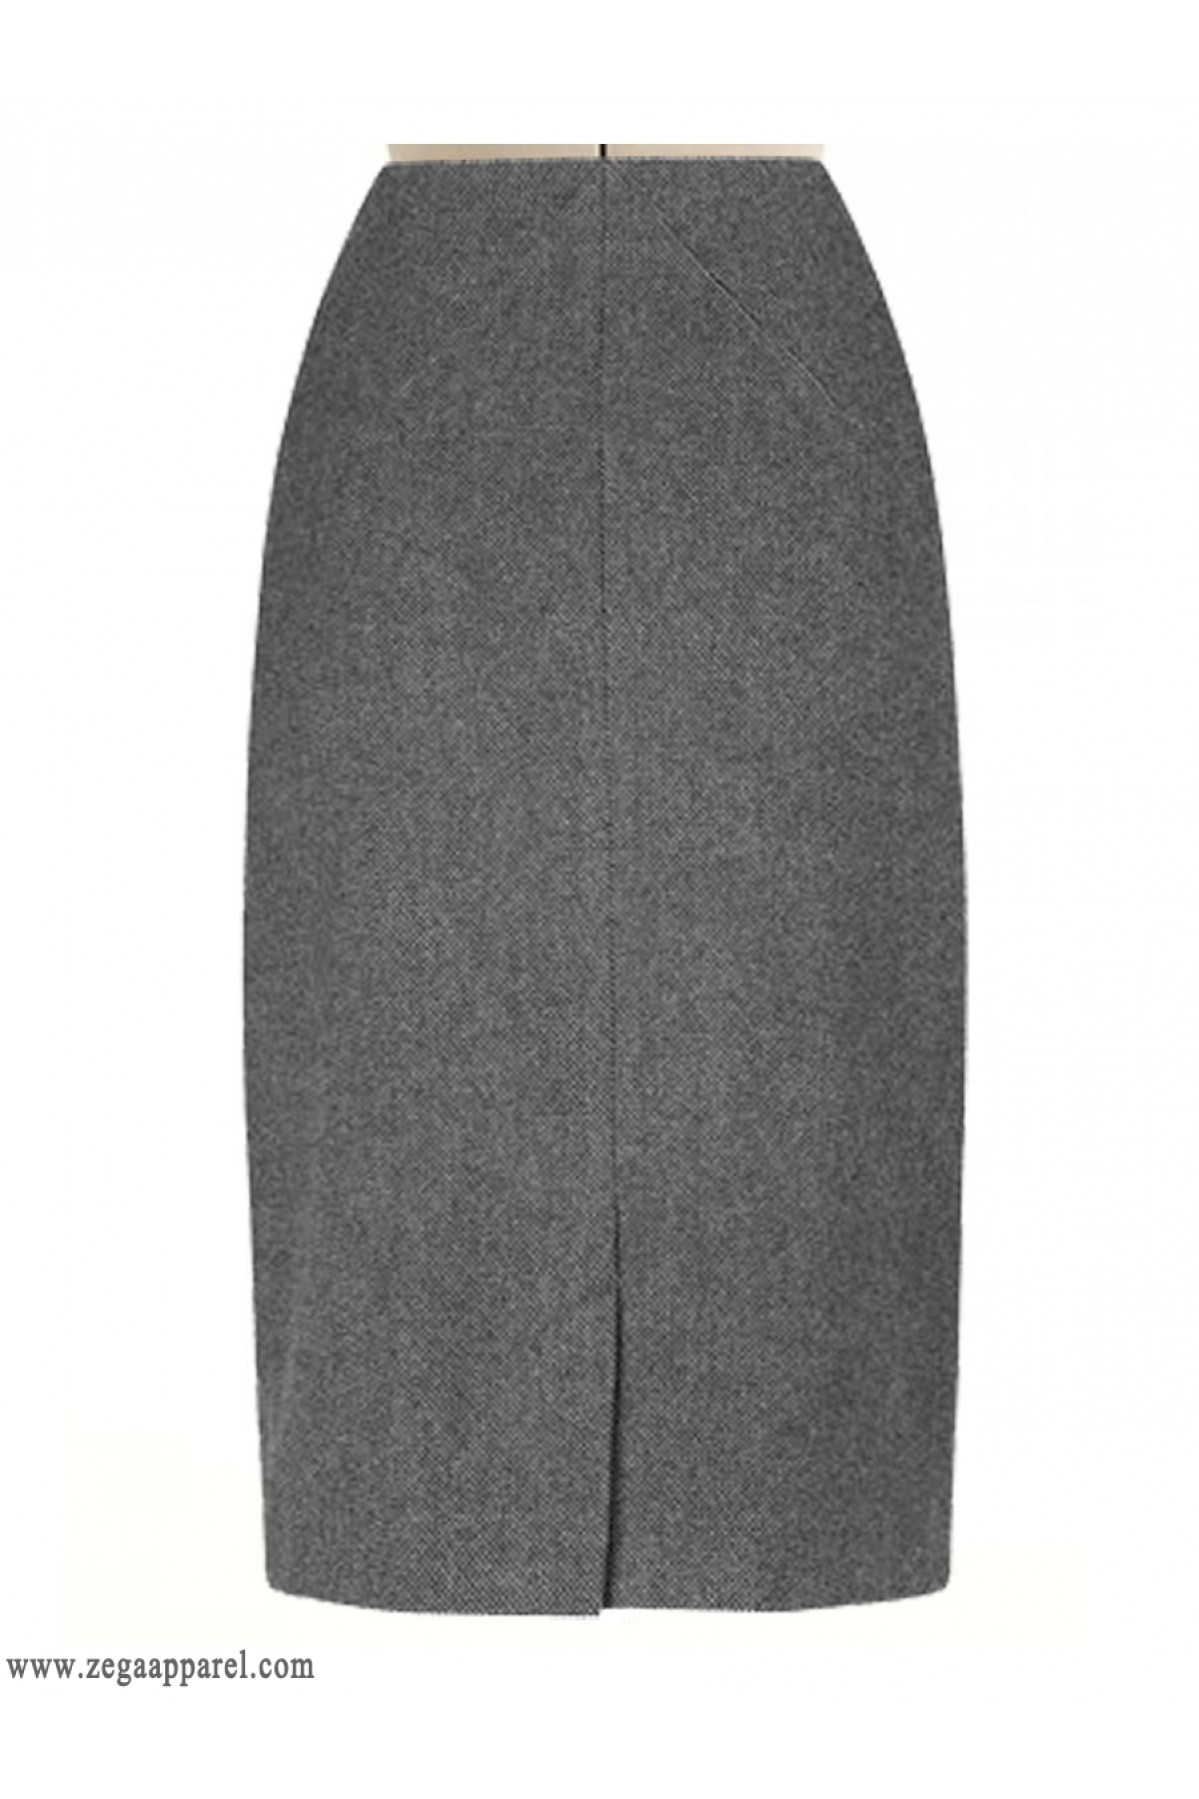 Skirts Cut And Sew Apparel Manufacturing Clothing Brand